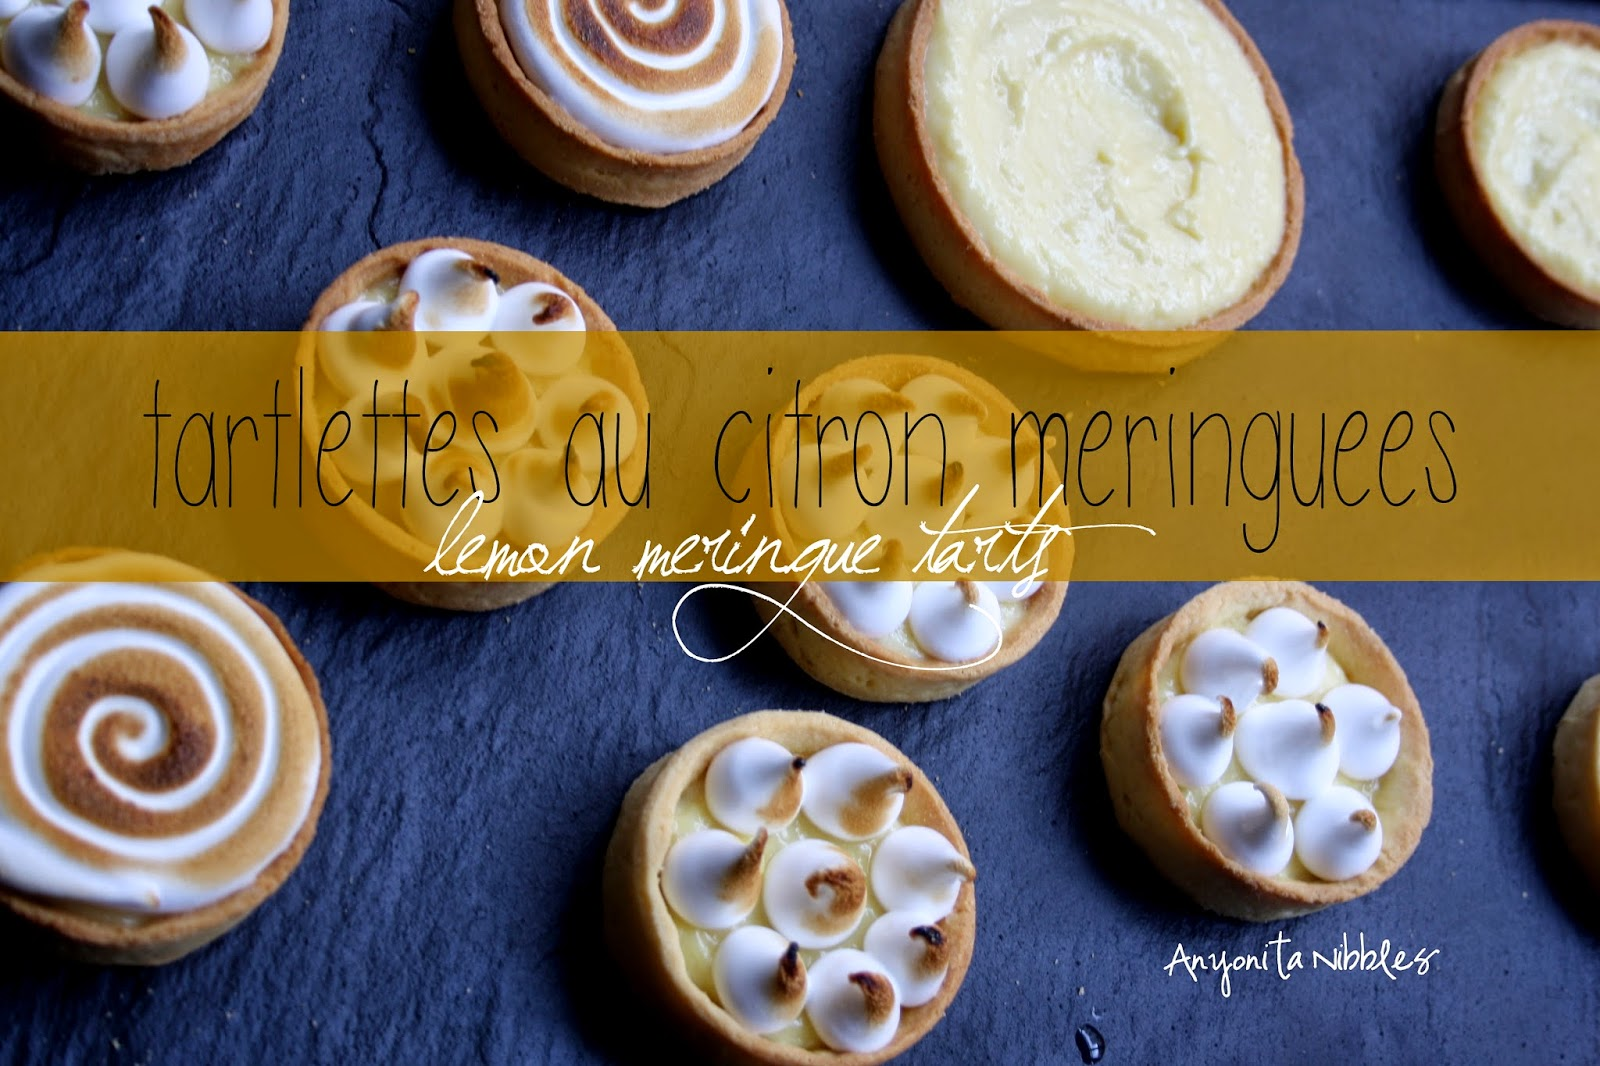 Tartlettes au Citron Meringuees from Anyonita Nibbles